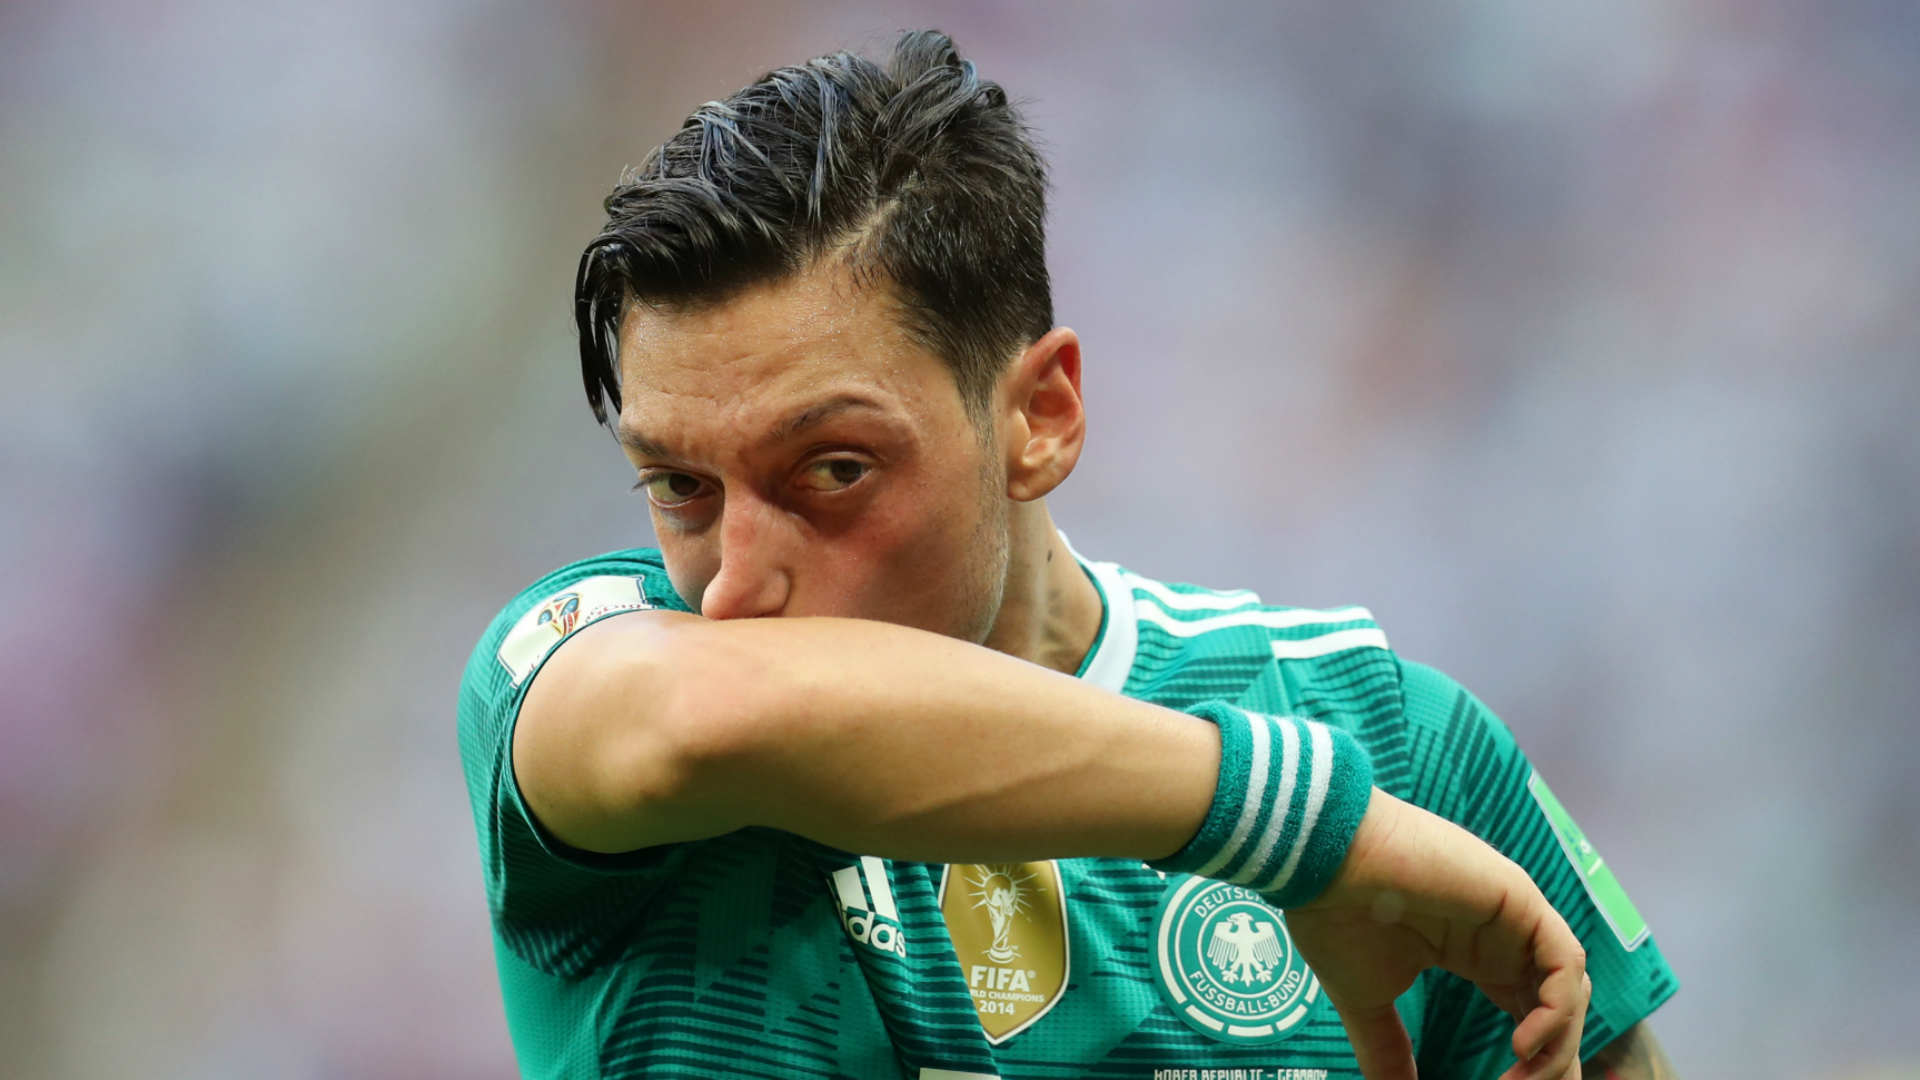 My picture with Turkish president not a political statement, insists Ozil